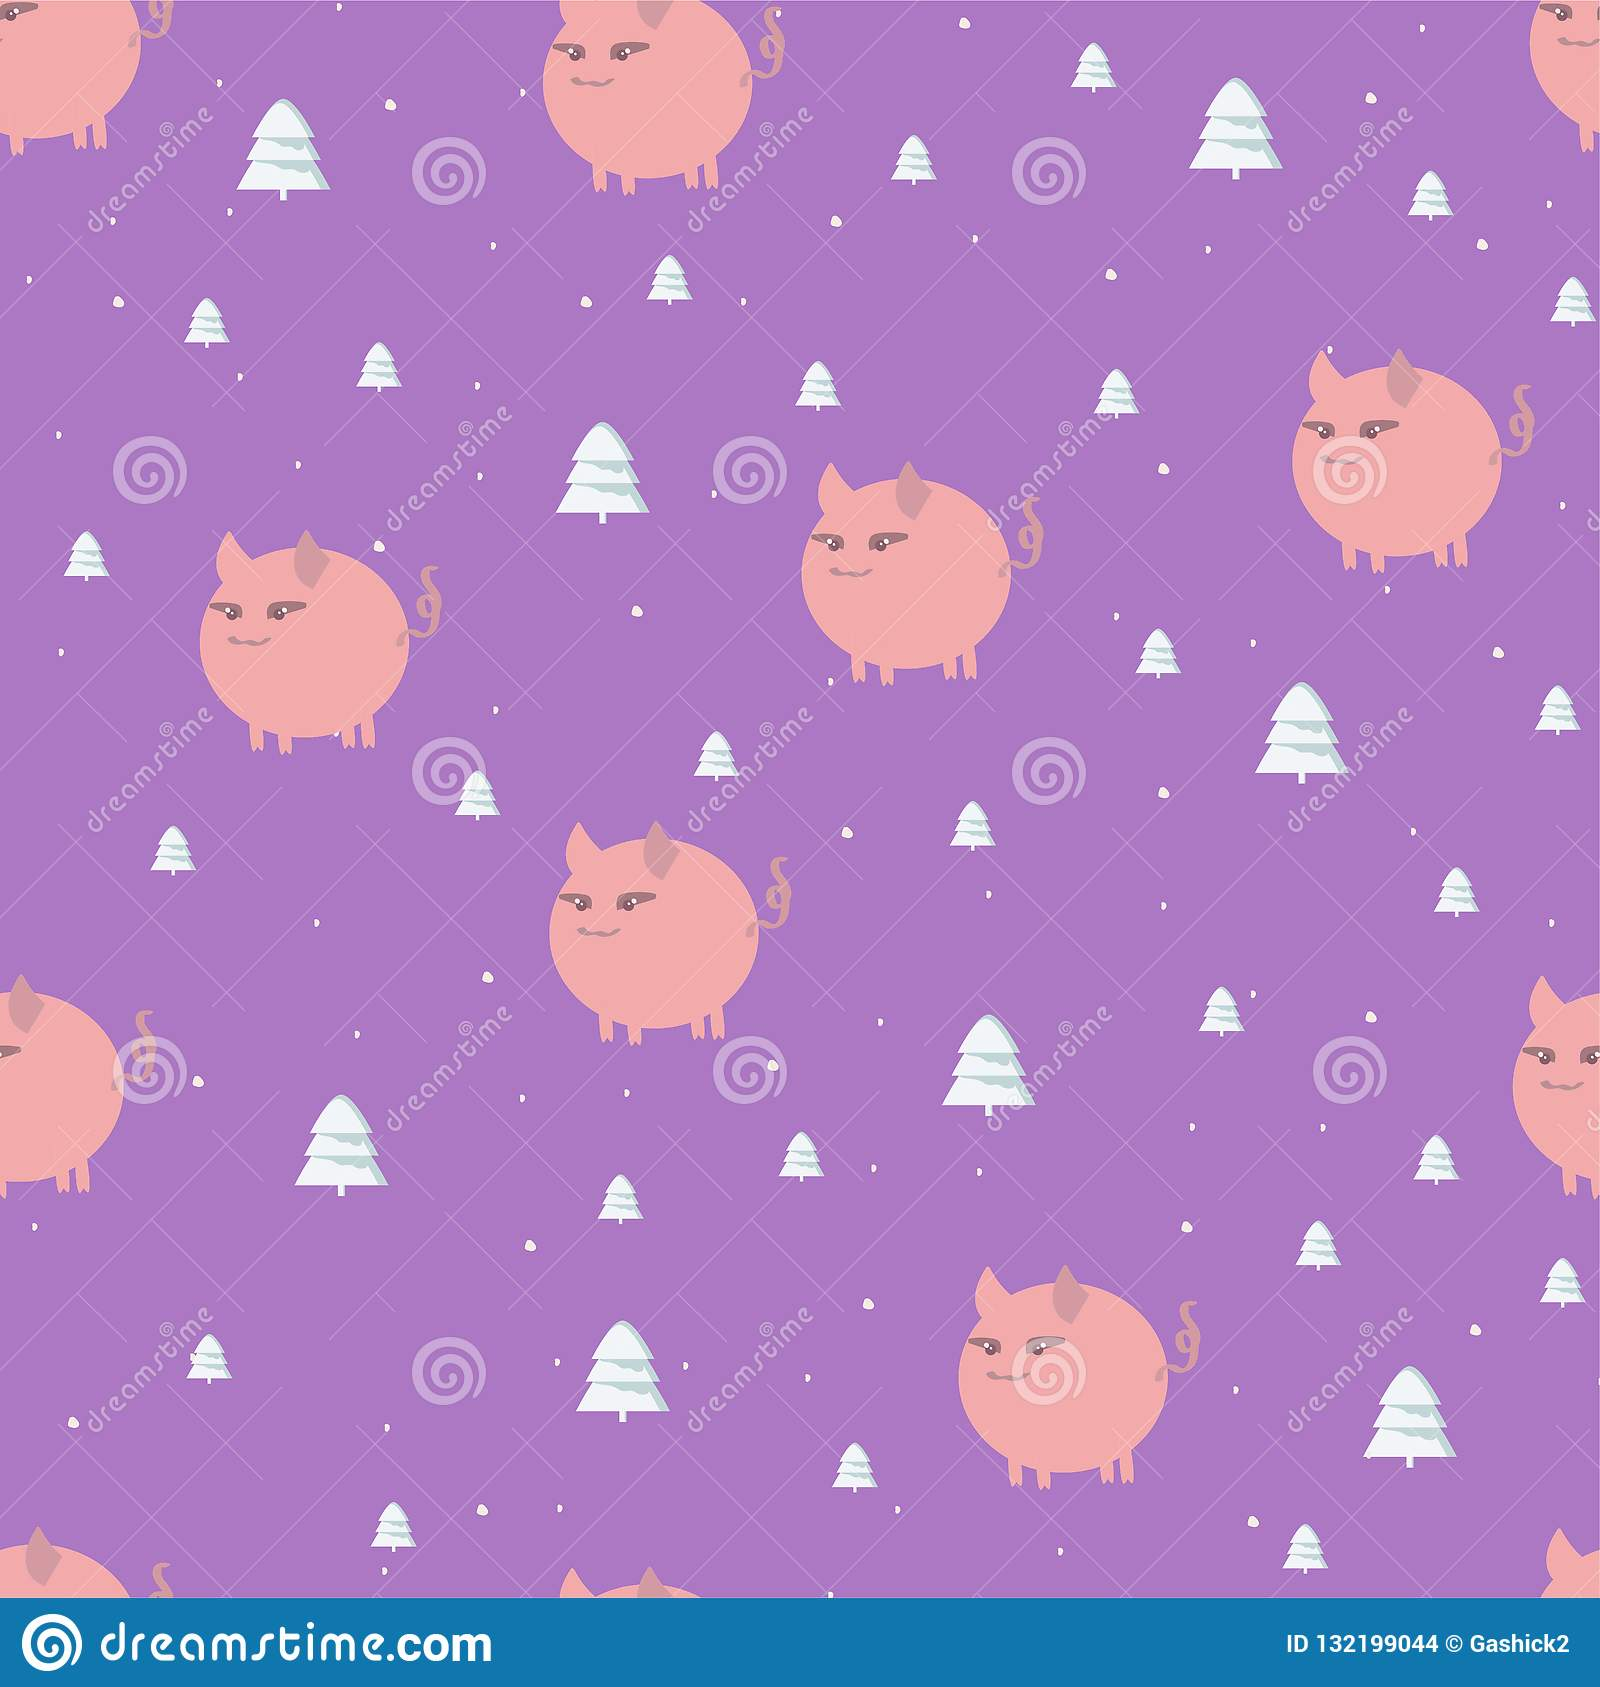 Seamless Christmas pattern with white pink piglets and forest trees on a bright purple square